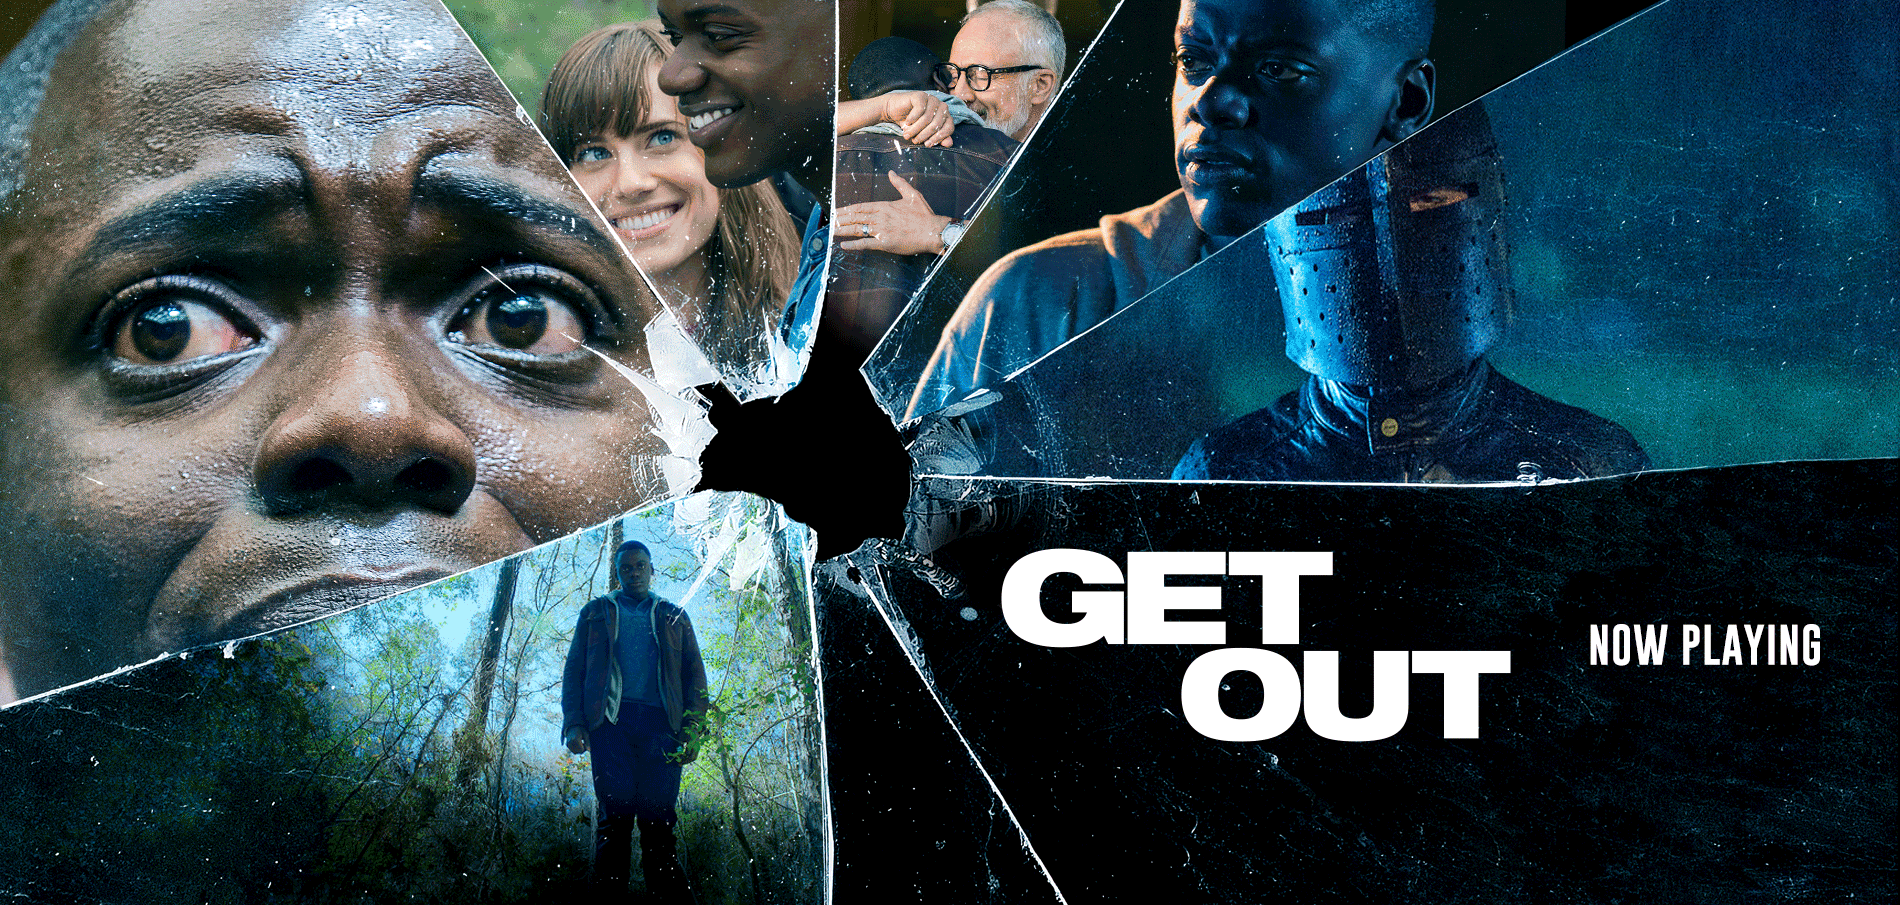 Get Out (2017) Movie Review. Making a 180-degree switch, Jordan ...